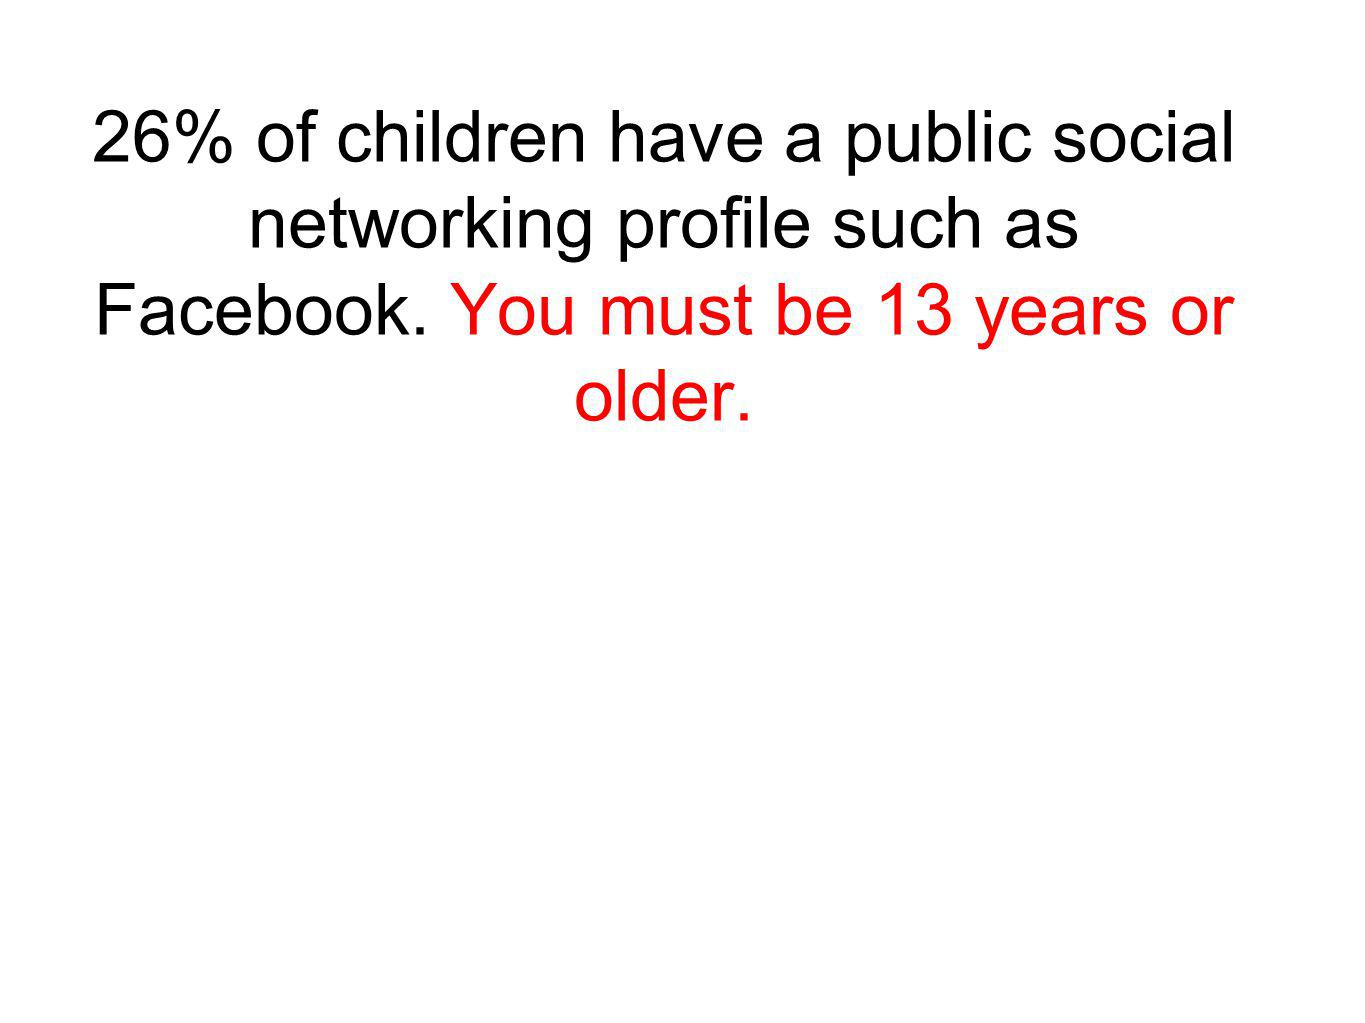 26% of children have a public social networking prole such as Facebook.